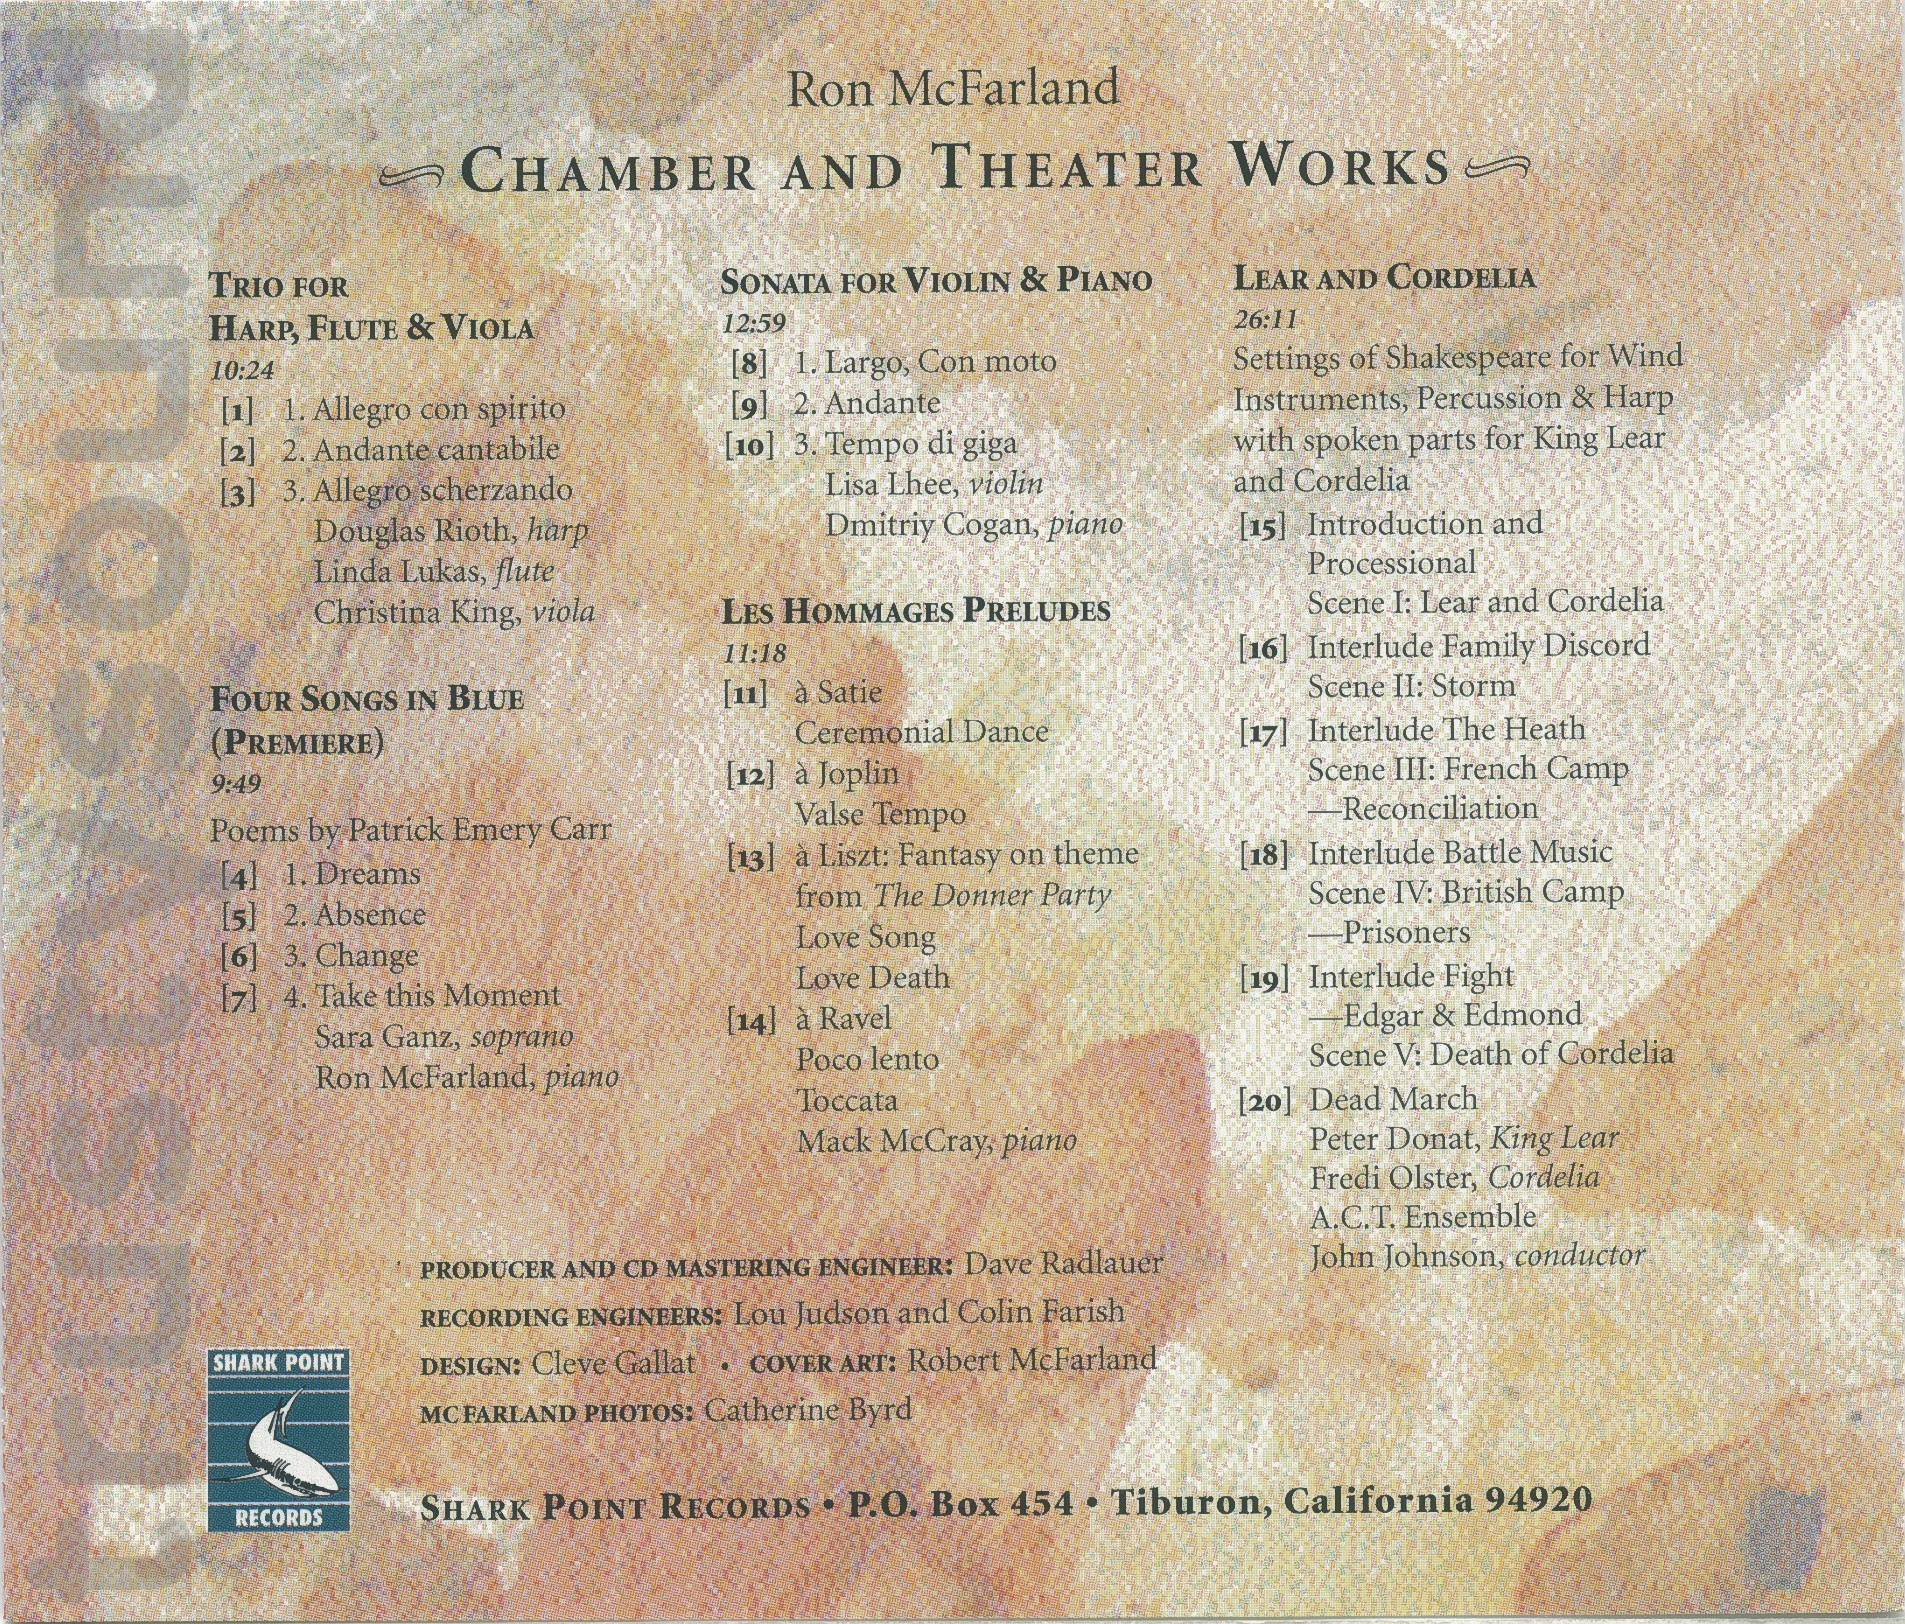 Trustysound: Products: Chamber and Theater Works by Ron